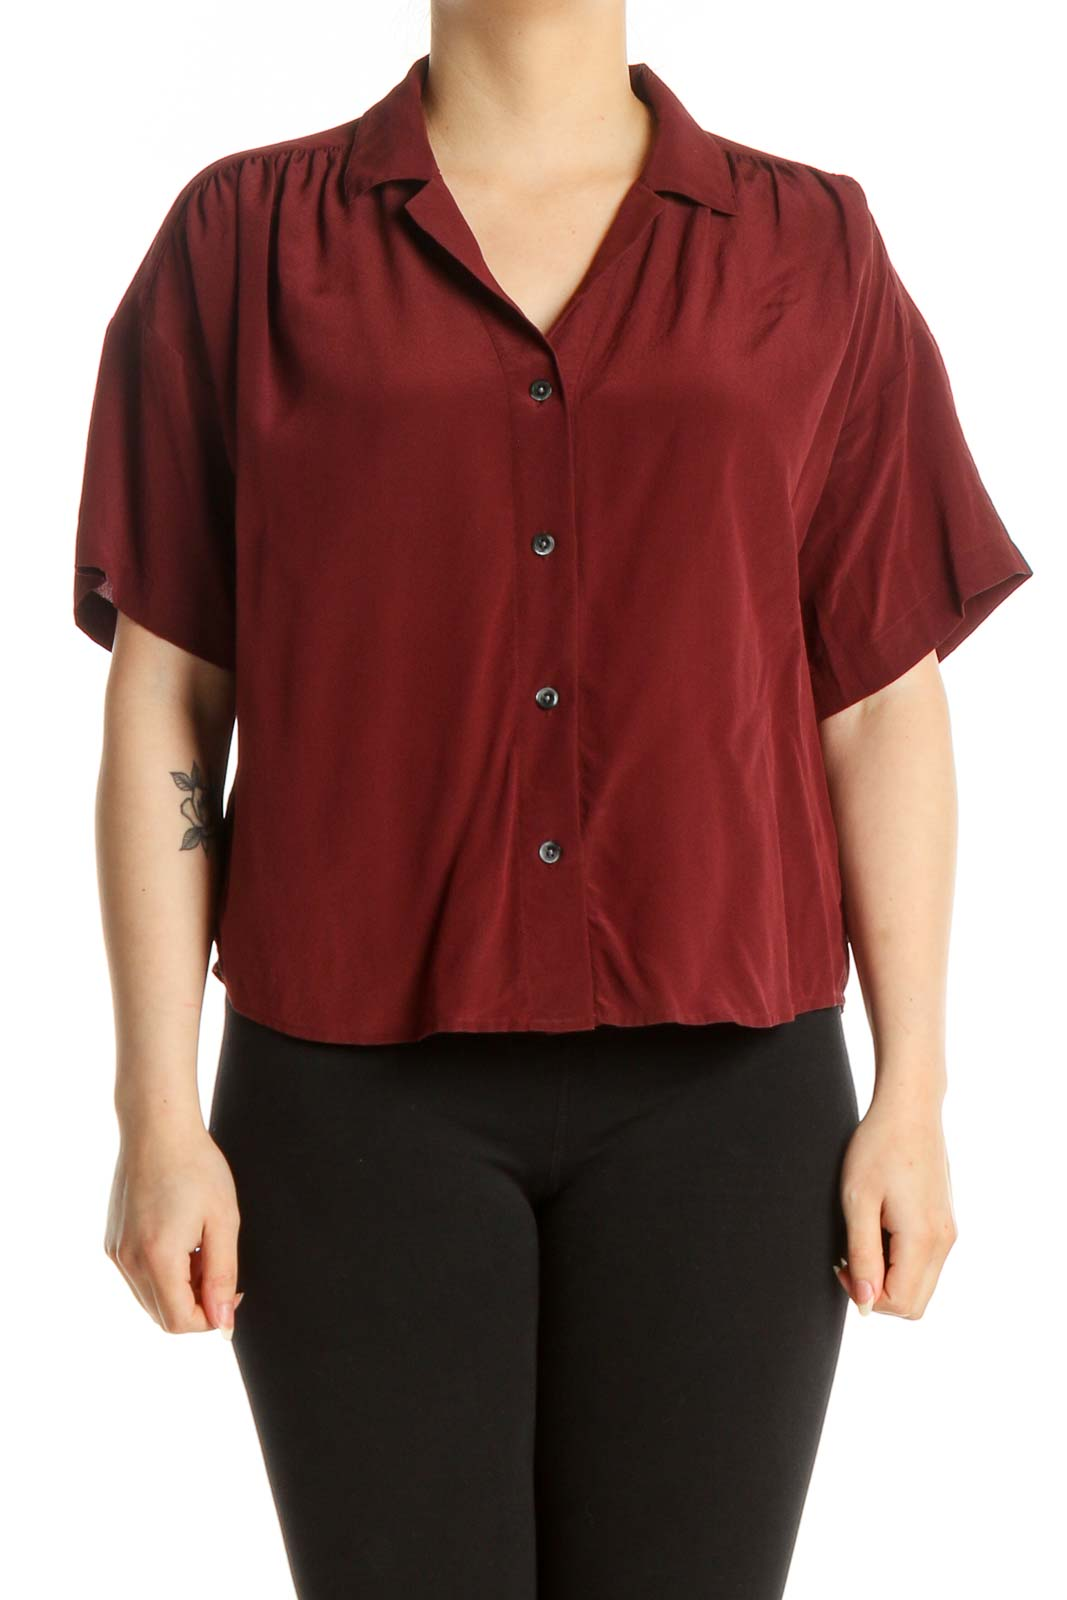 Red Solid Chic Shirt Front